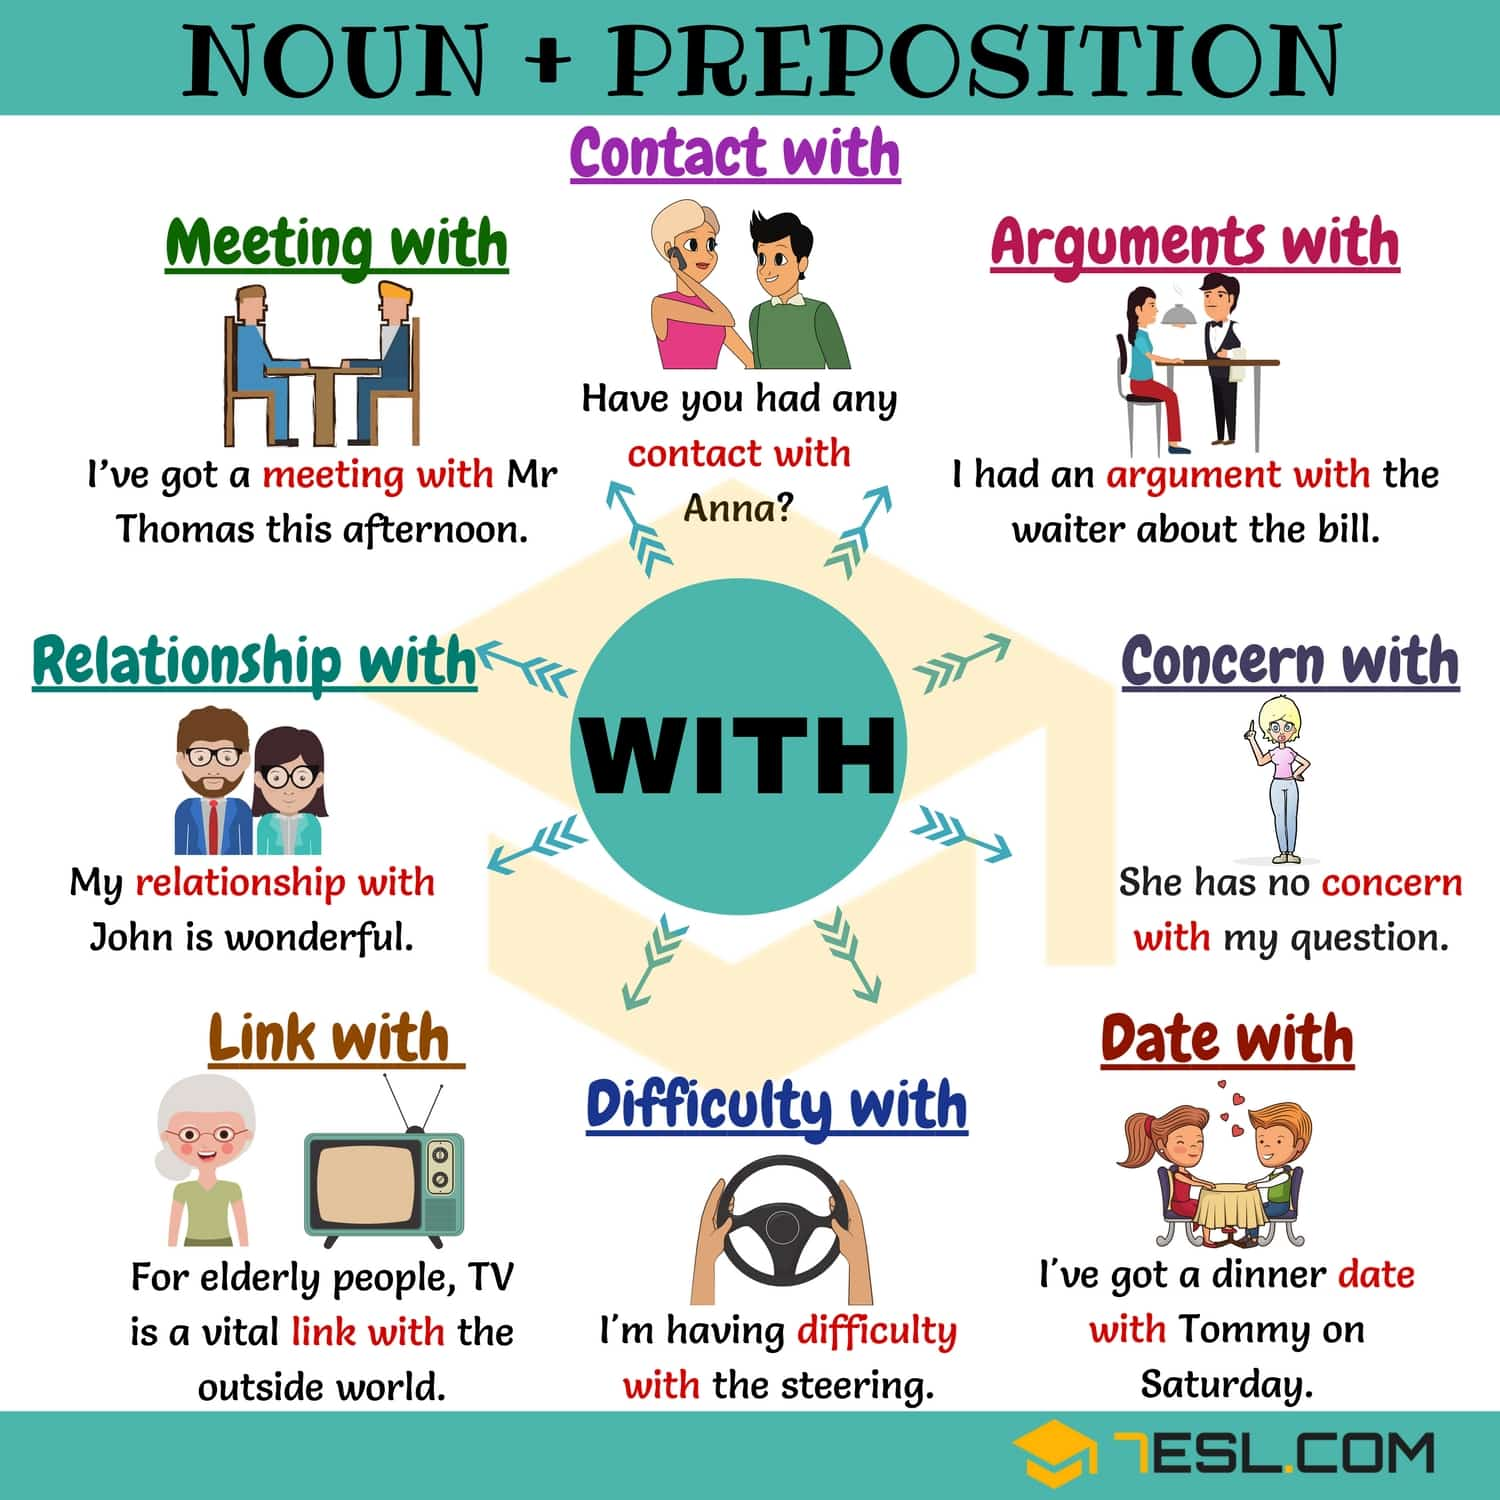 Noun And Preposition With